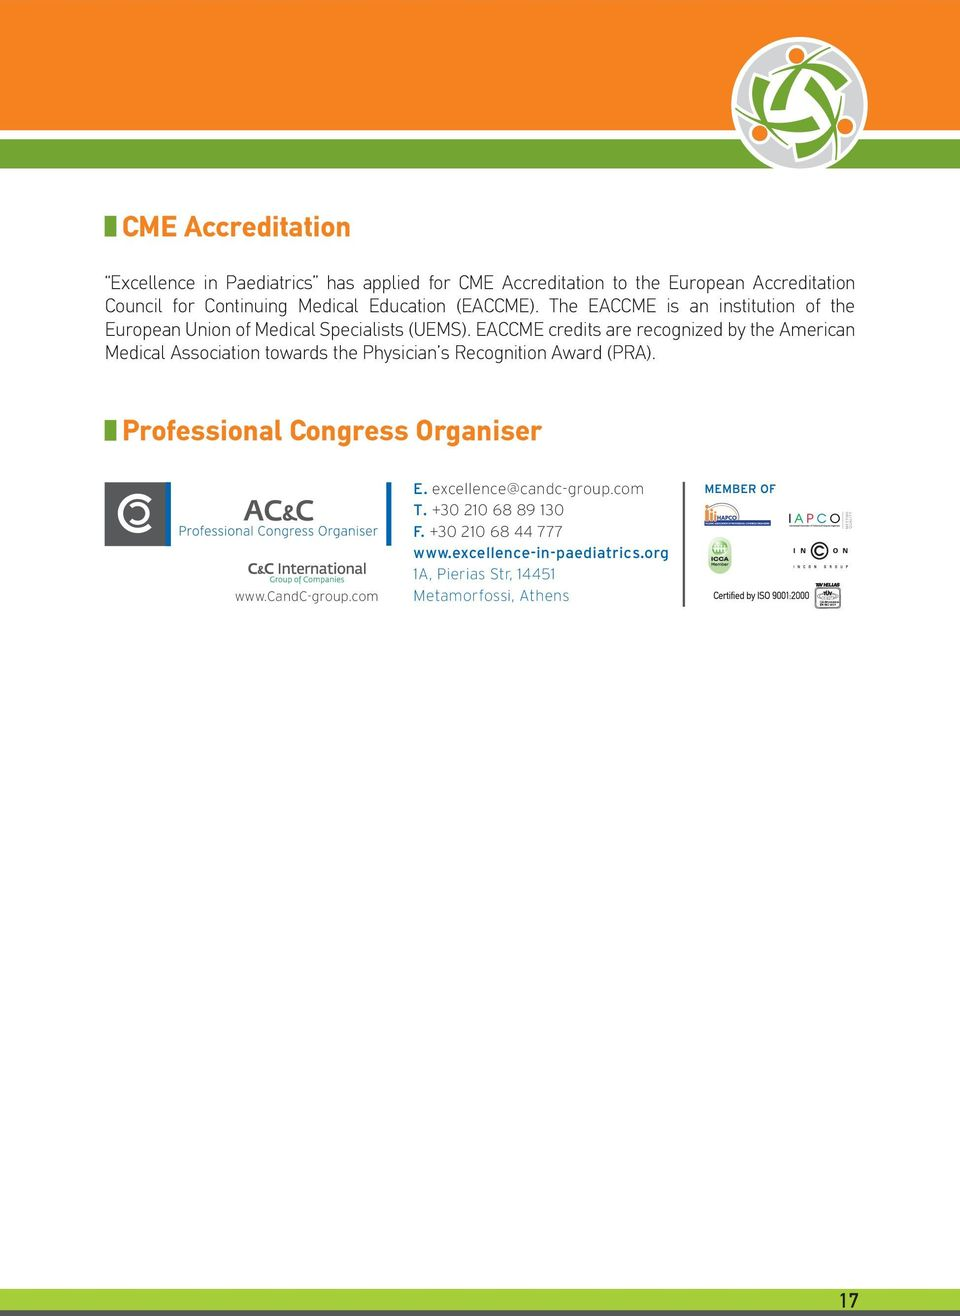 EACCME credits are recognized by the American Medical Association towards the Physician s Recognition Award (PRA).